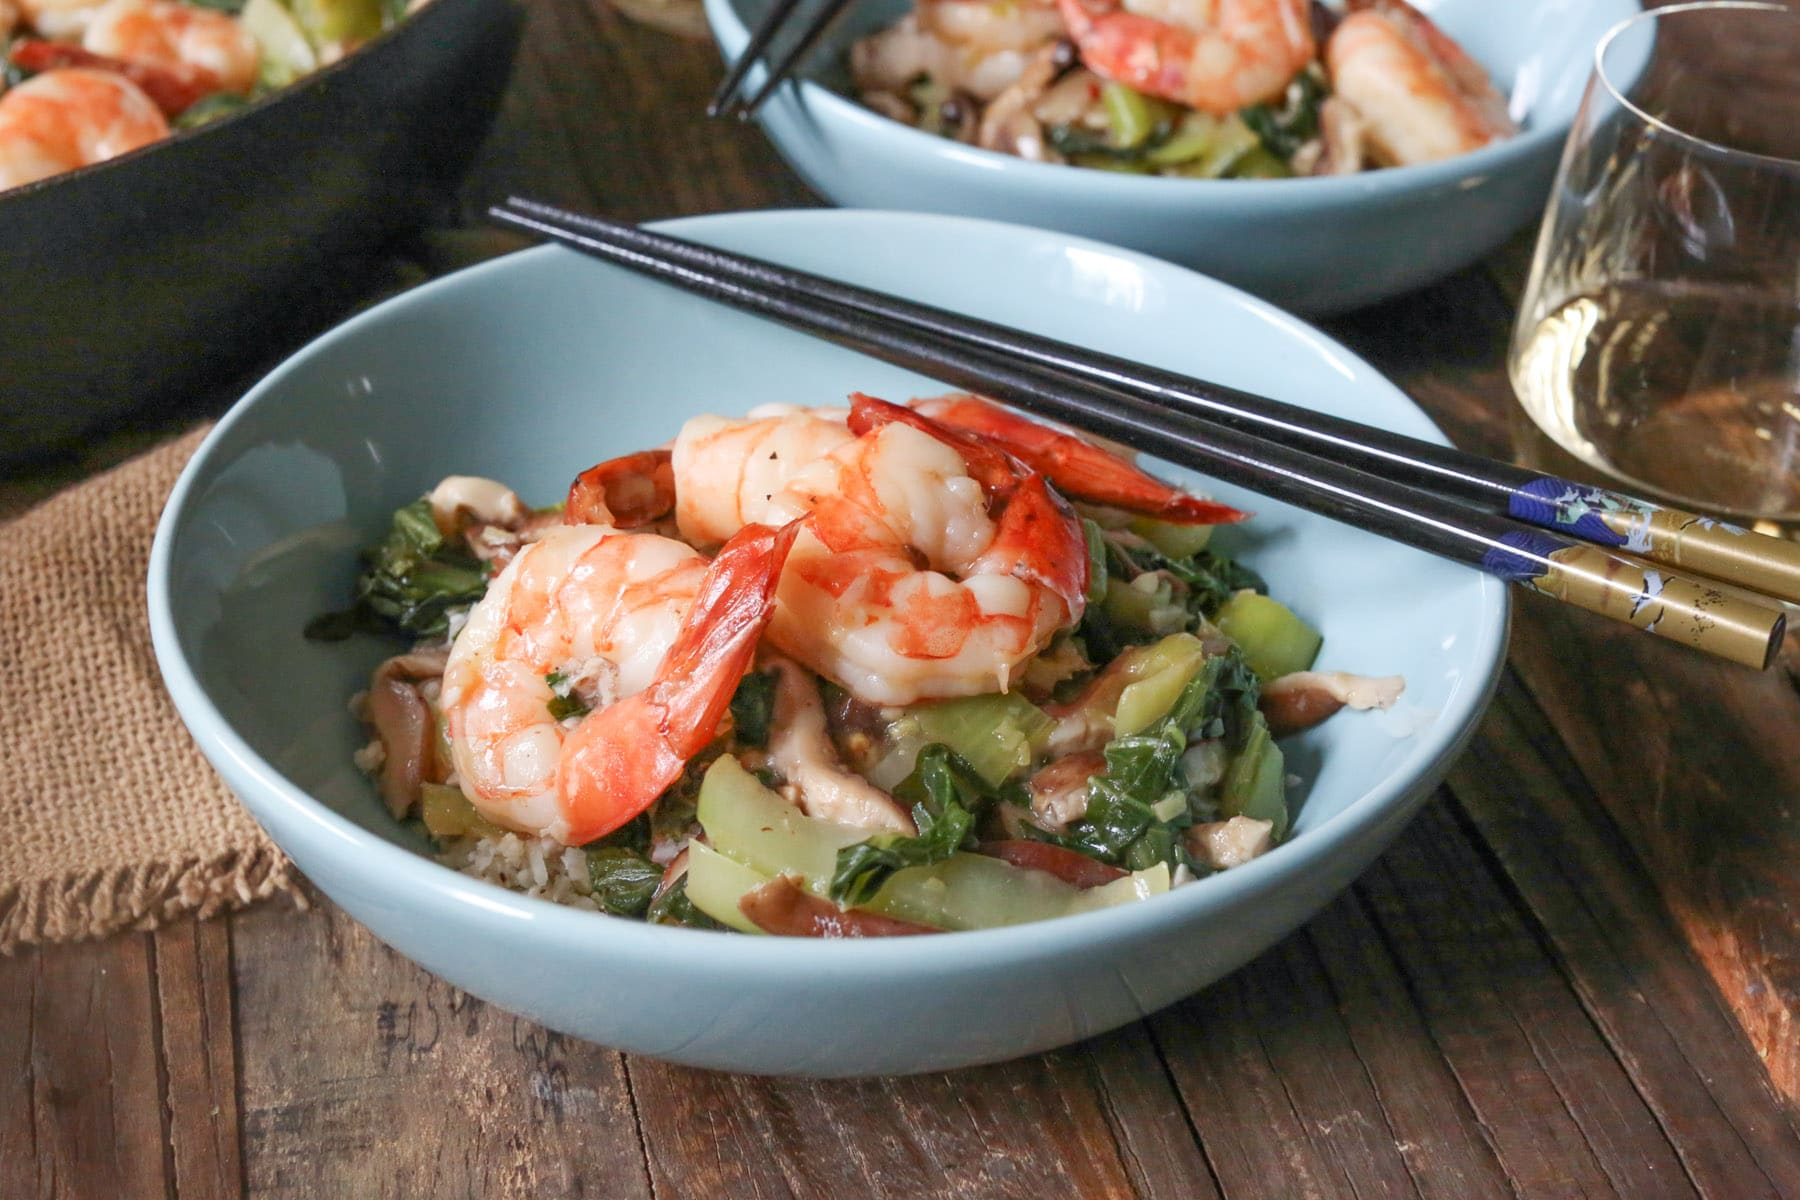 Garlicky-Shrimp-Stir-Fry-with-Shitake-Mushrooms-and-Baby-Bok-Choy-7